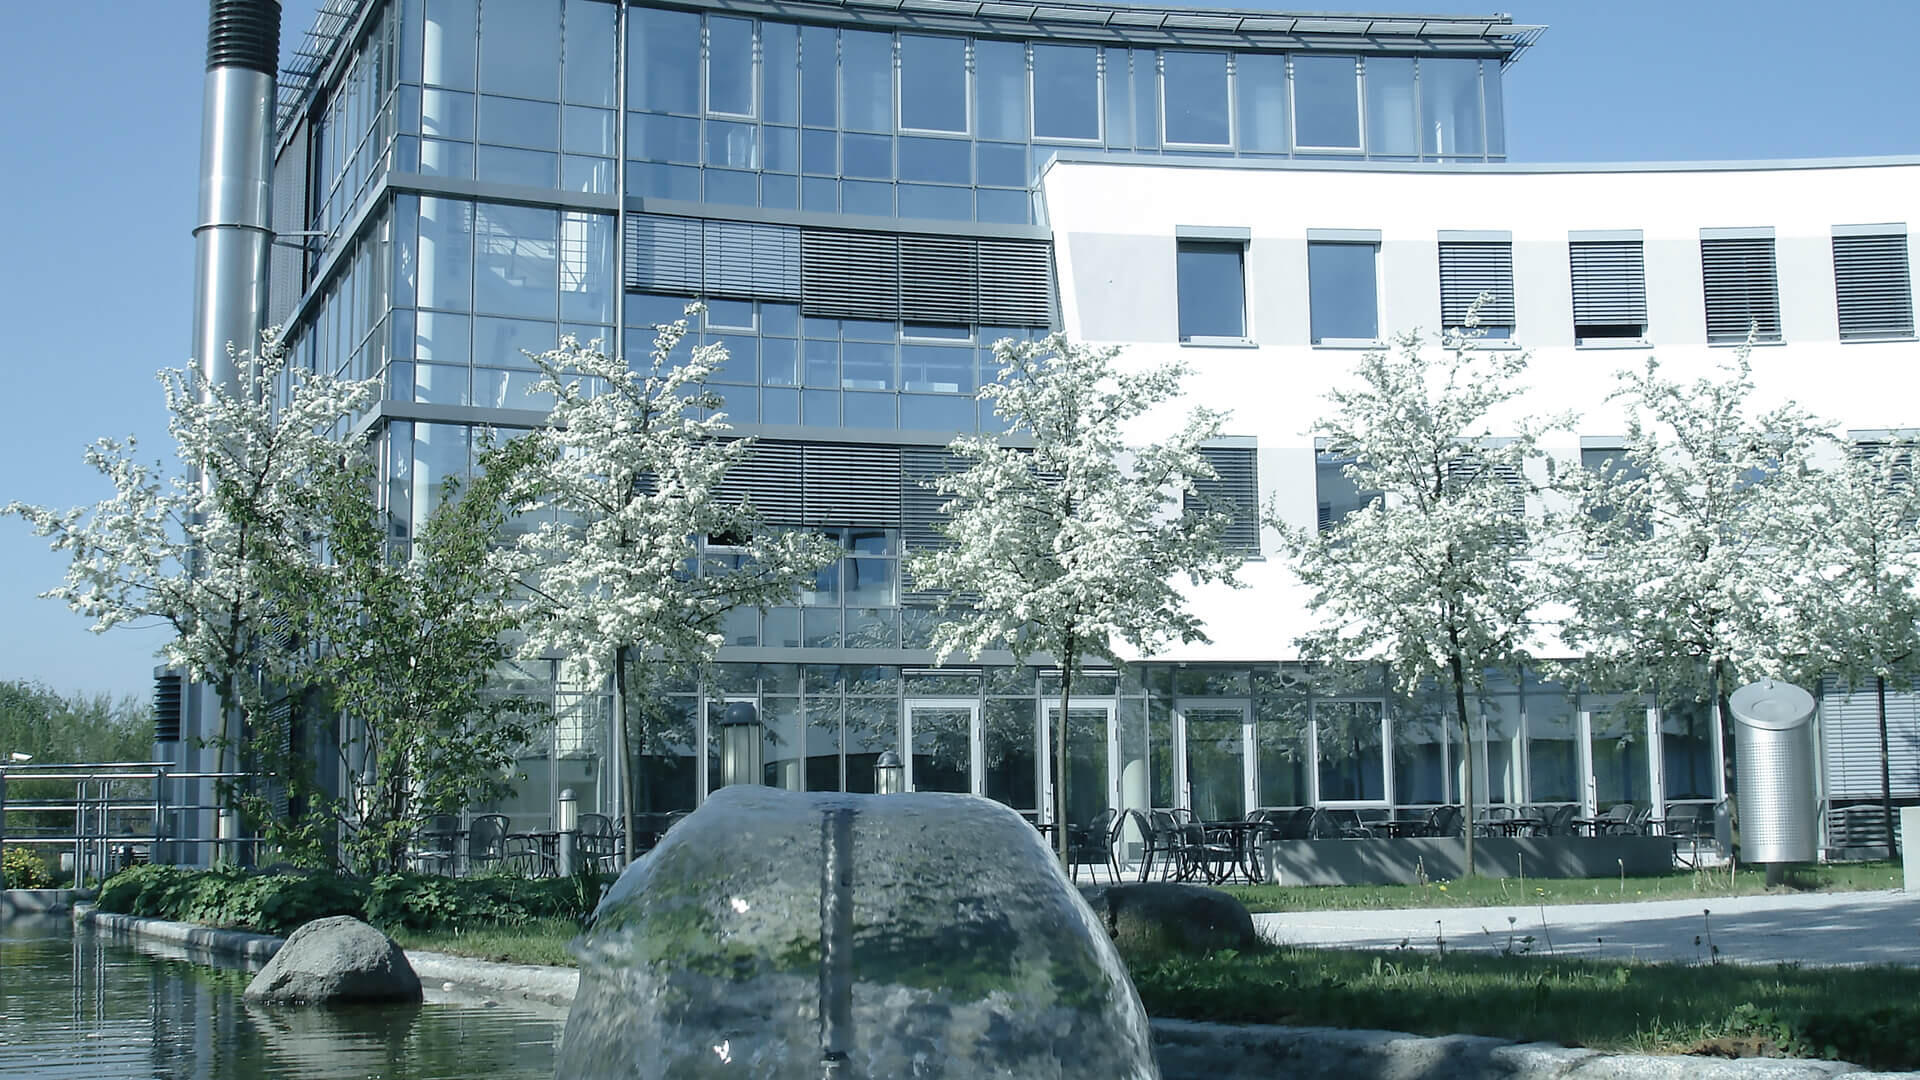 Technology and nature meet at the Tebis headquarters in Martinsried near Munich